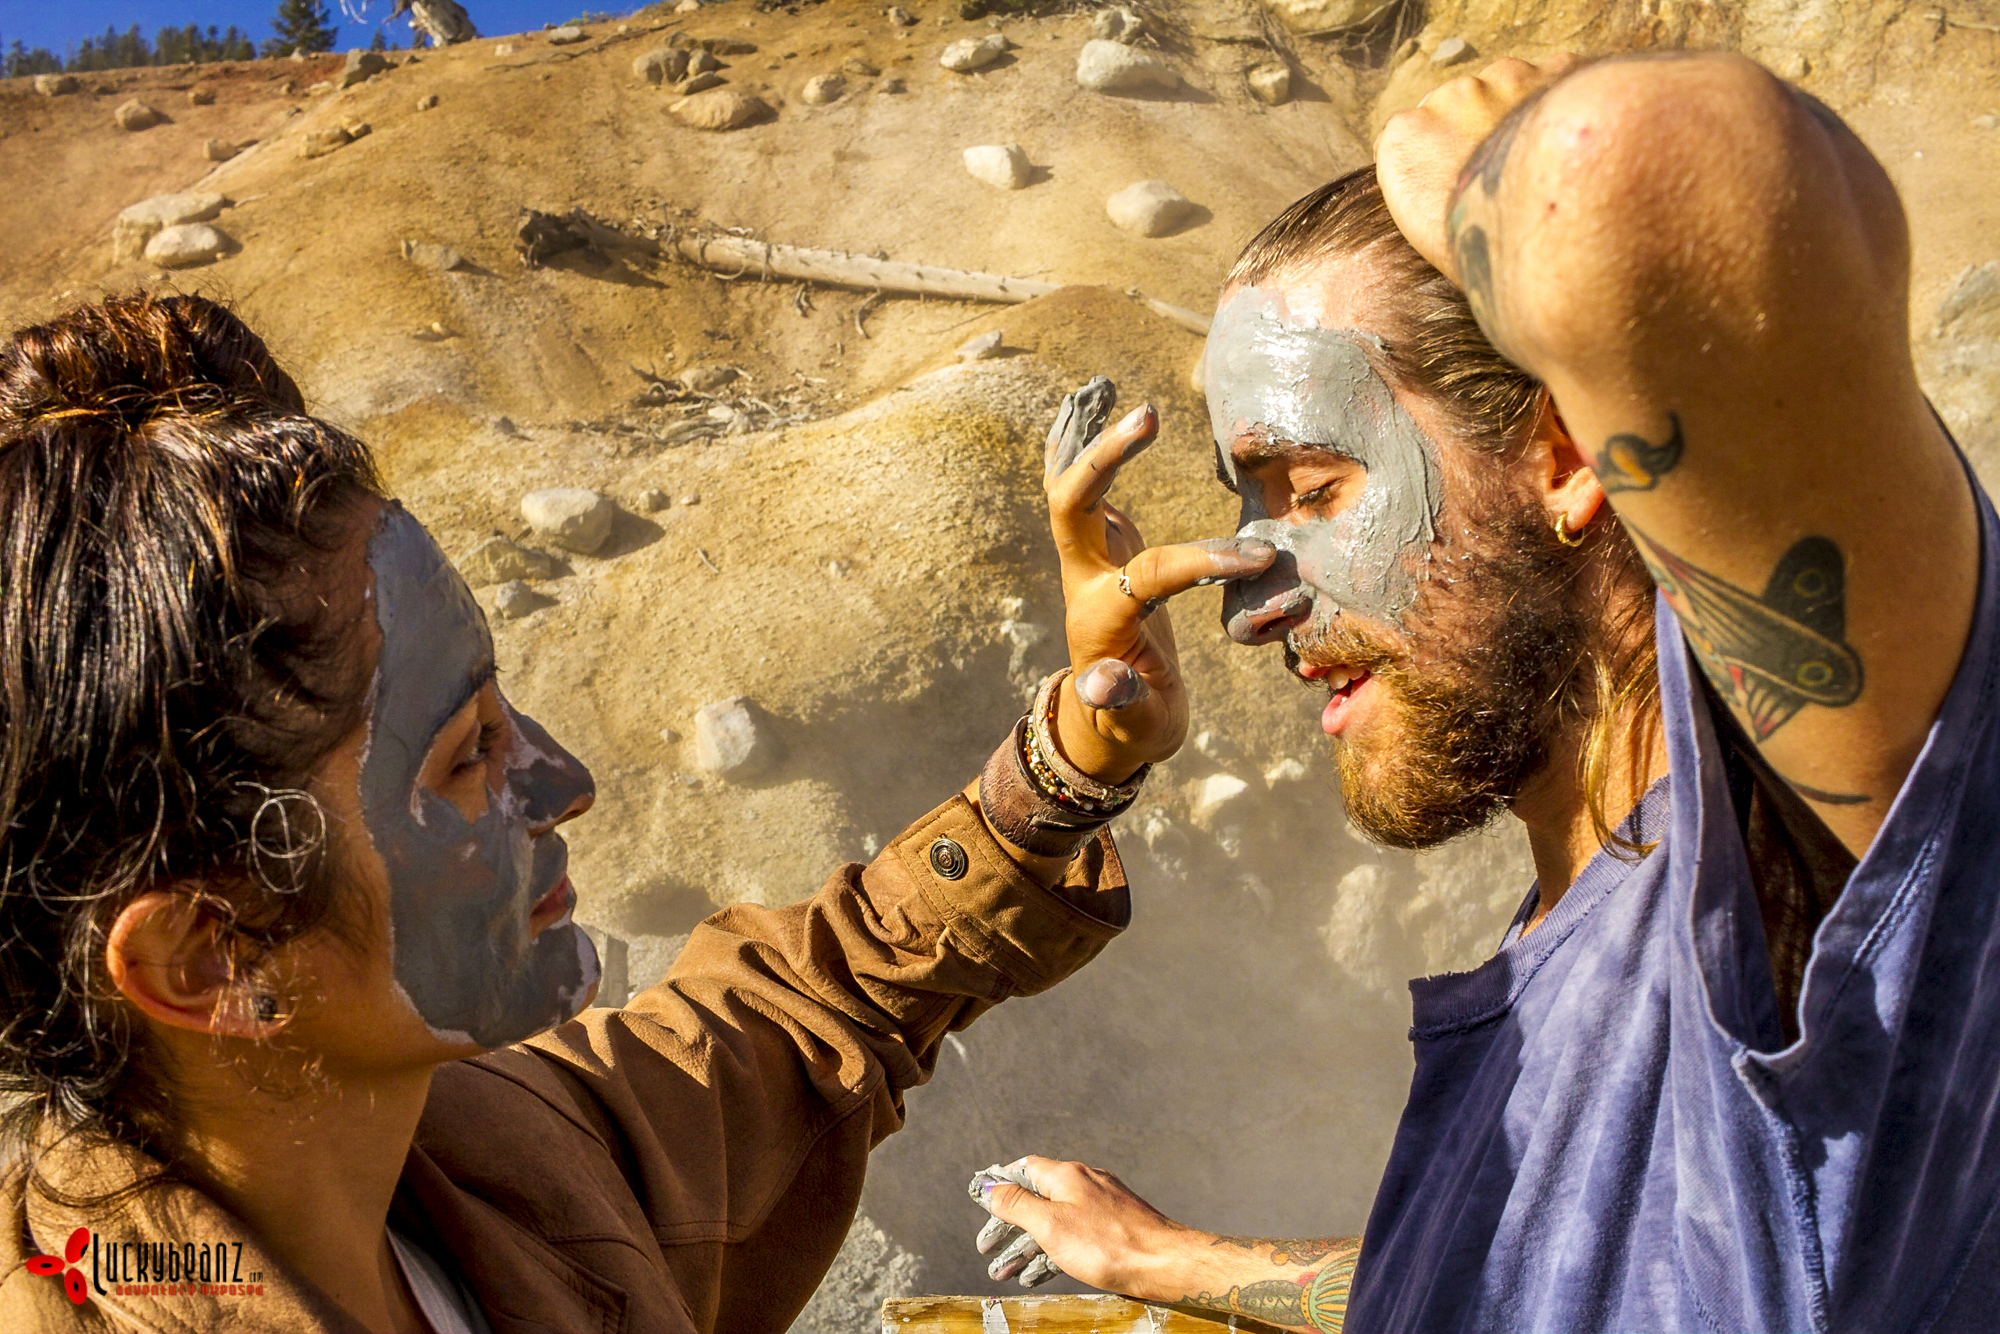 Painting faces in Lassner Volcanic Park. These two saw Virginia and I doing it and decided to join in.